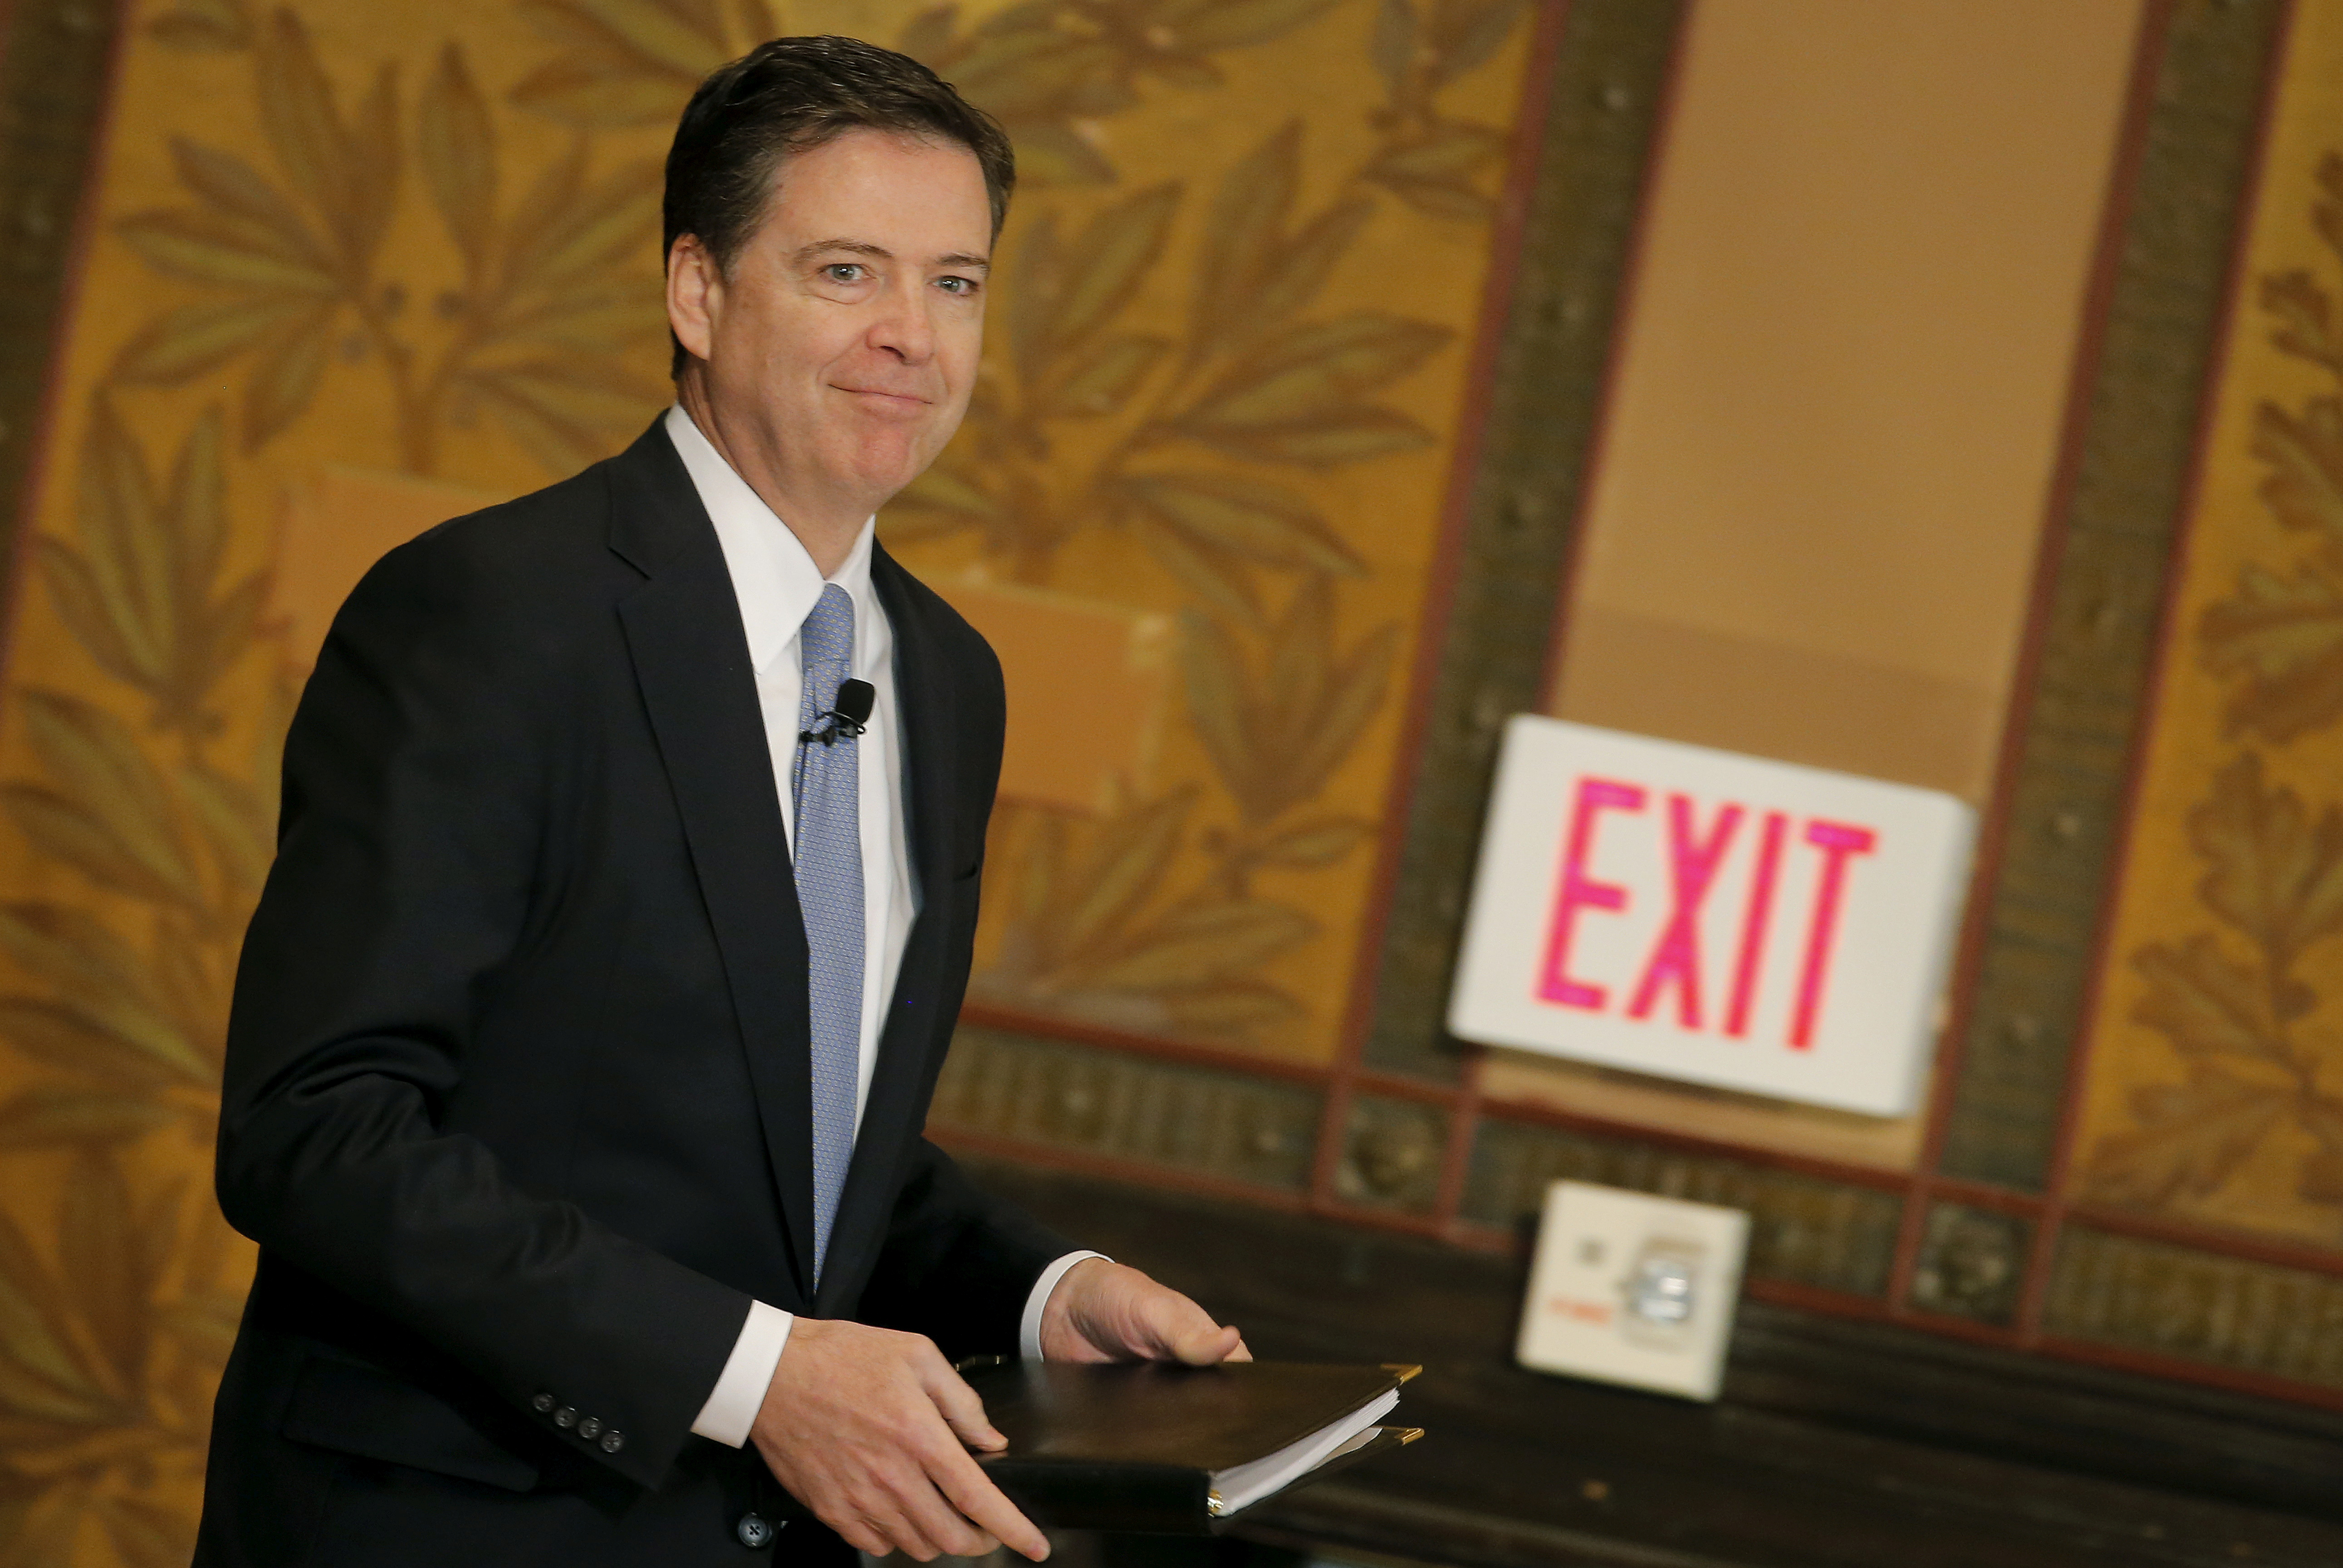 FILE - FBI Director James Comey arrives to deliver a speech at the Master of Science in Foreign Service CyberProject's sixth annual conference at Georgetown University in Washington D.C., April 26, 2016.